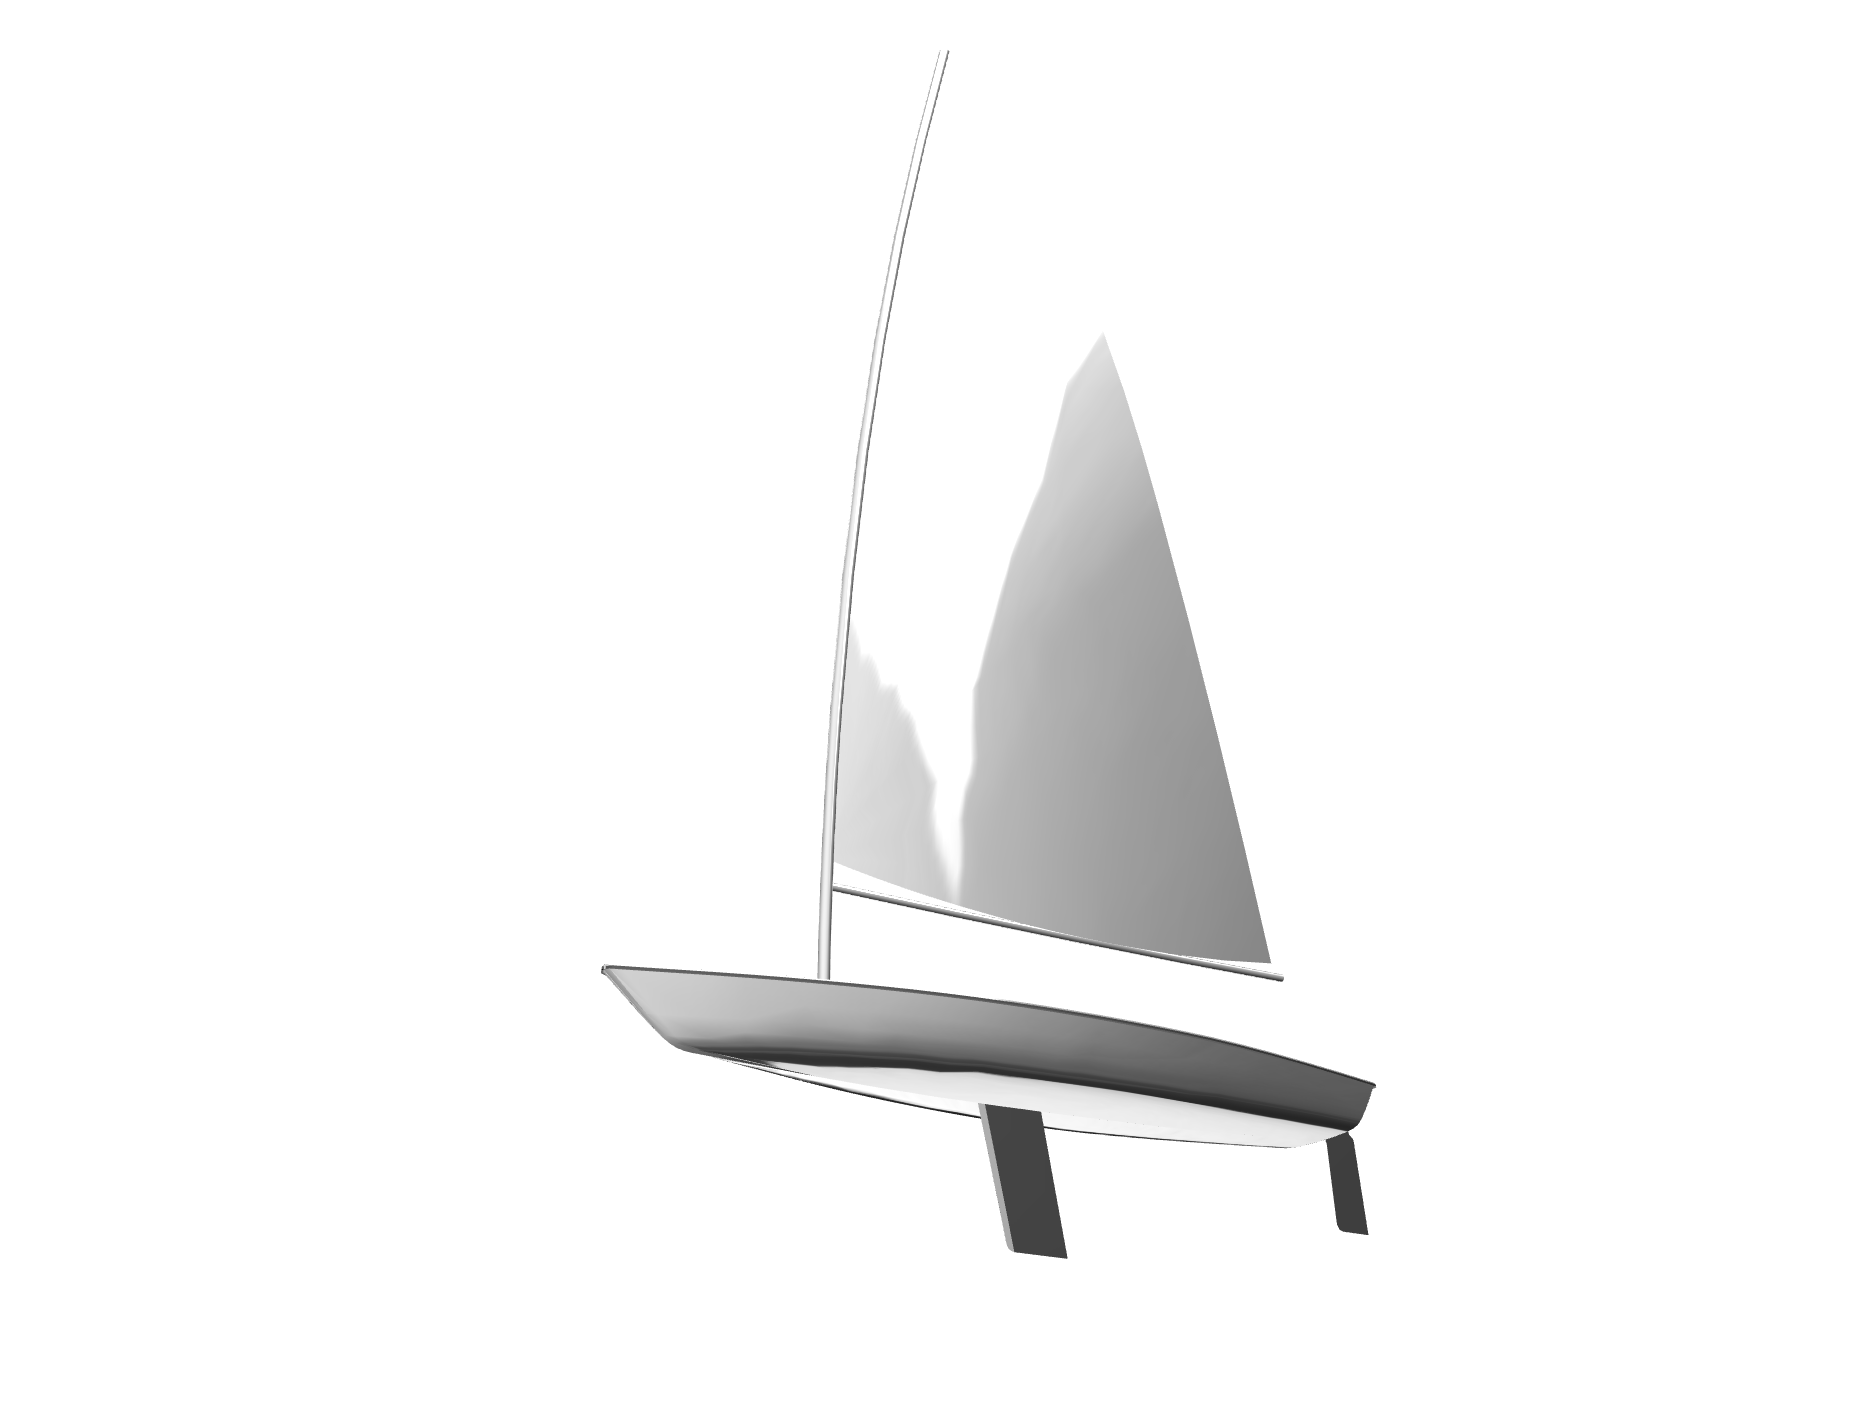 Laser Sailboat - 3D design by Kyle Billings Nov 6, 2017